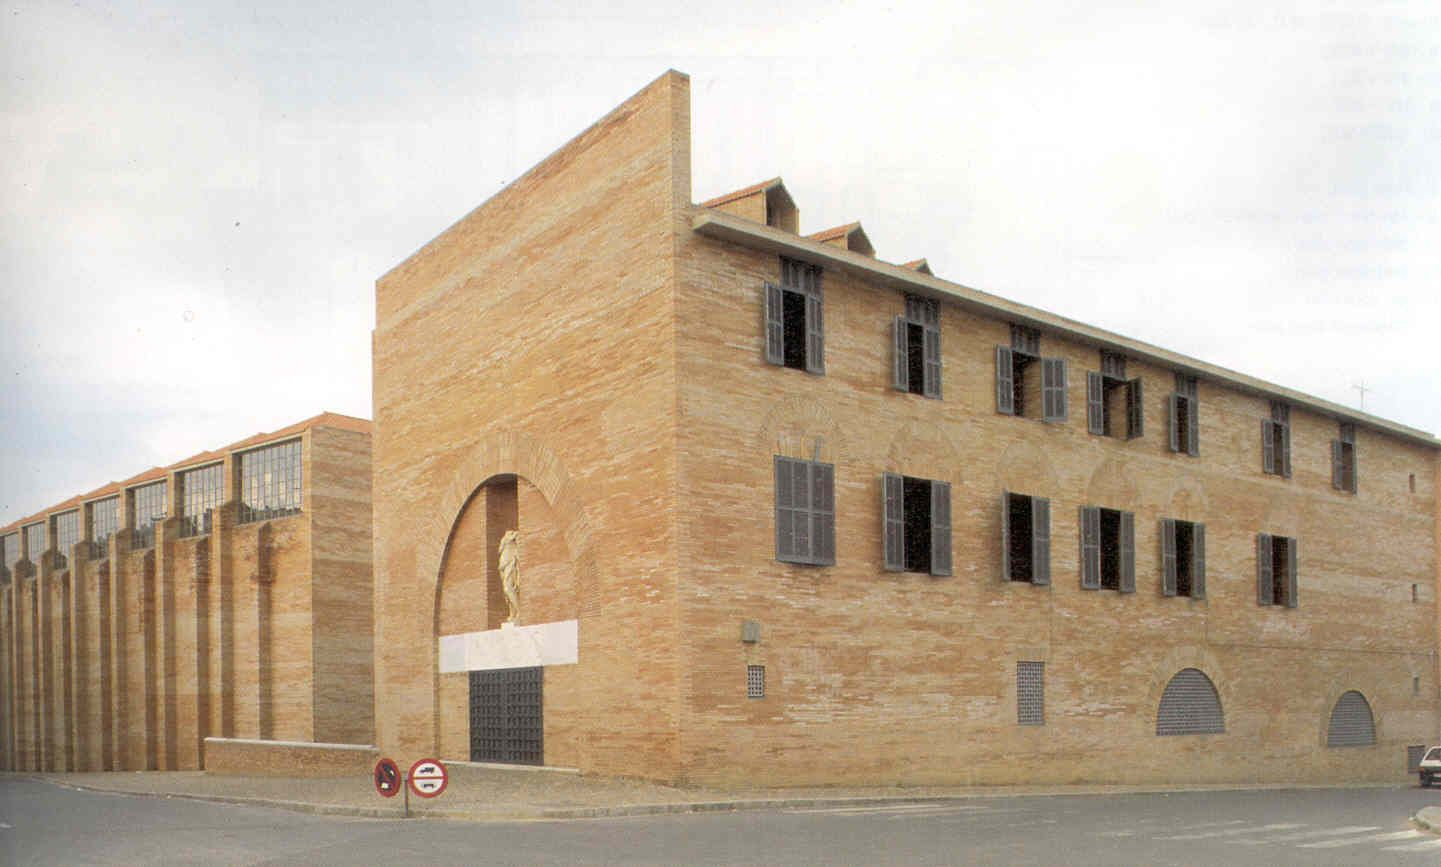 Rafale Moneo, the Roman Art National Museum in Merida, Spain  Architecture a...